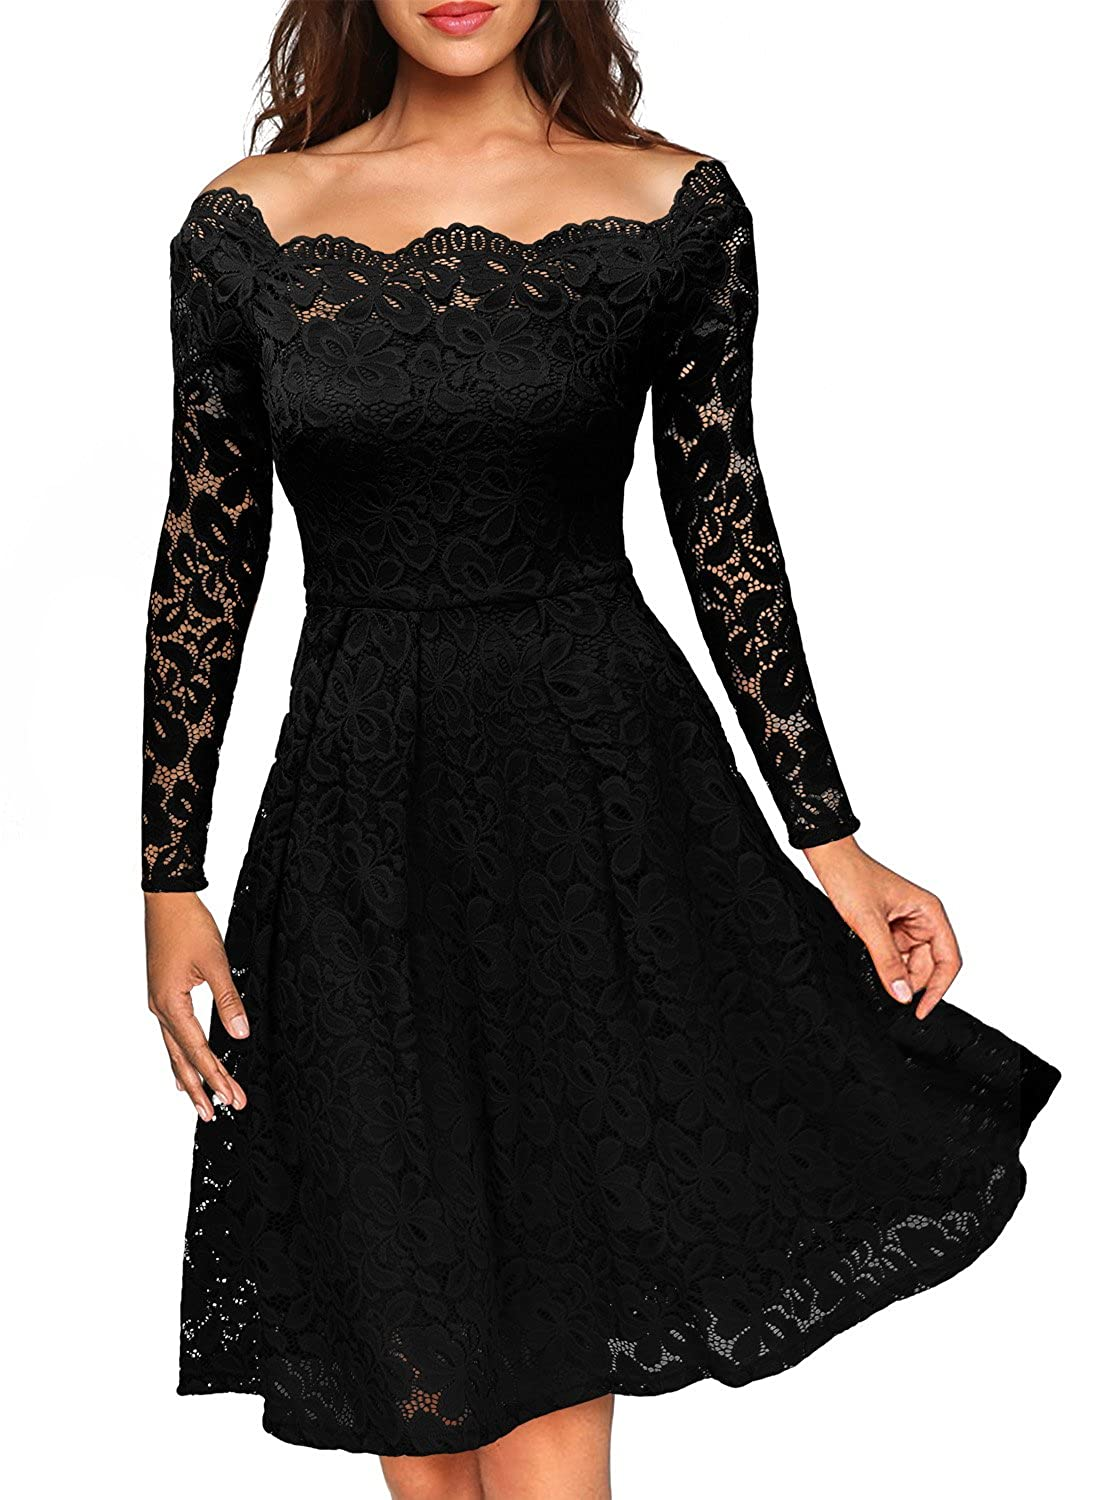 MIUSOL Women\'s Off Shoulder Short Sleeve Lace Evening Dress: Amazon ...